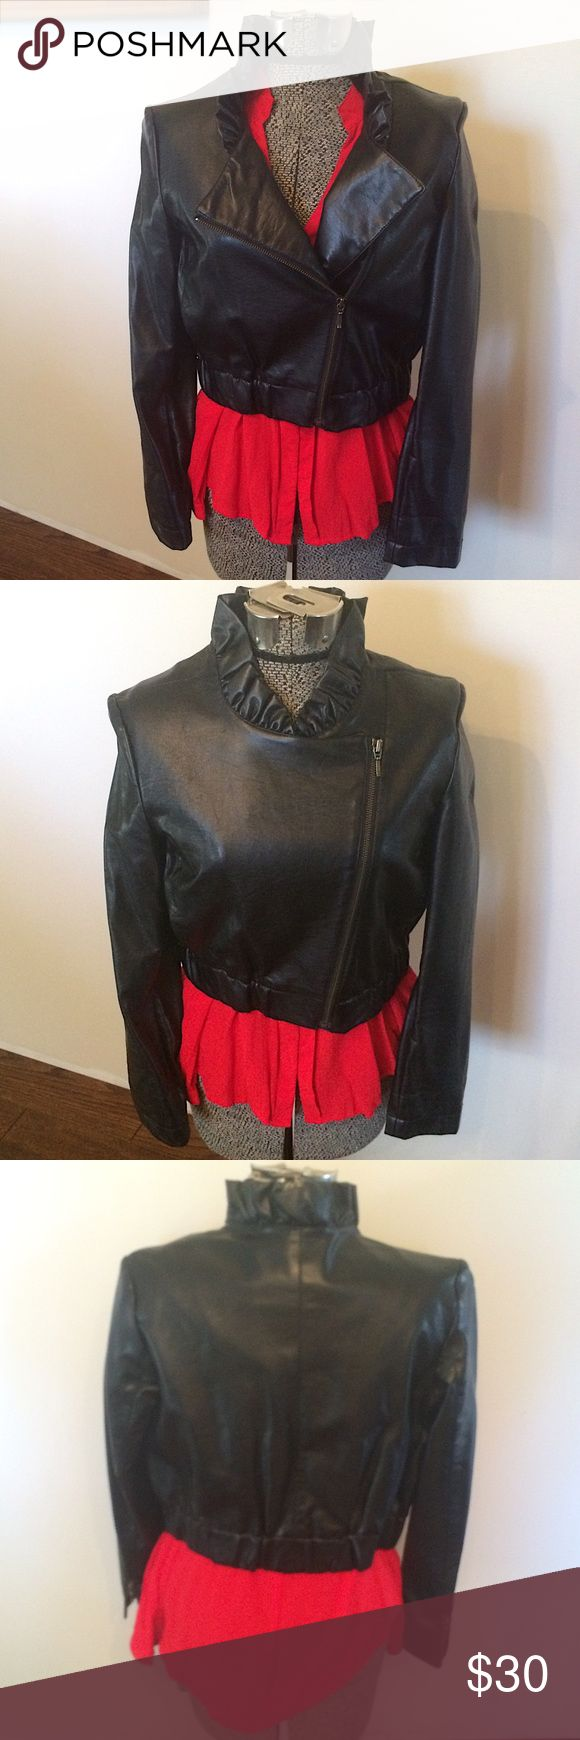 Black faux leather jacket size S Black faux leather jacket size S. Absolutely adorable on. Great condition. Shell: polyurethane fabric: 100% rayon lining: 100% polyester. Hand wash cold. Pictures don't do it justice. Zipper detail on the front and wrists of sleeves. Elastic at waist. Jacket hit me at my mid section, I am 5'8. It isn't meant to hit at the hips. elle Jackets & Coats